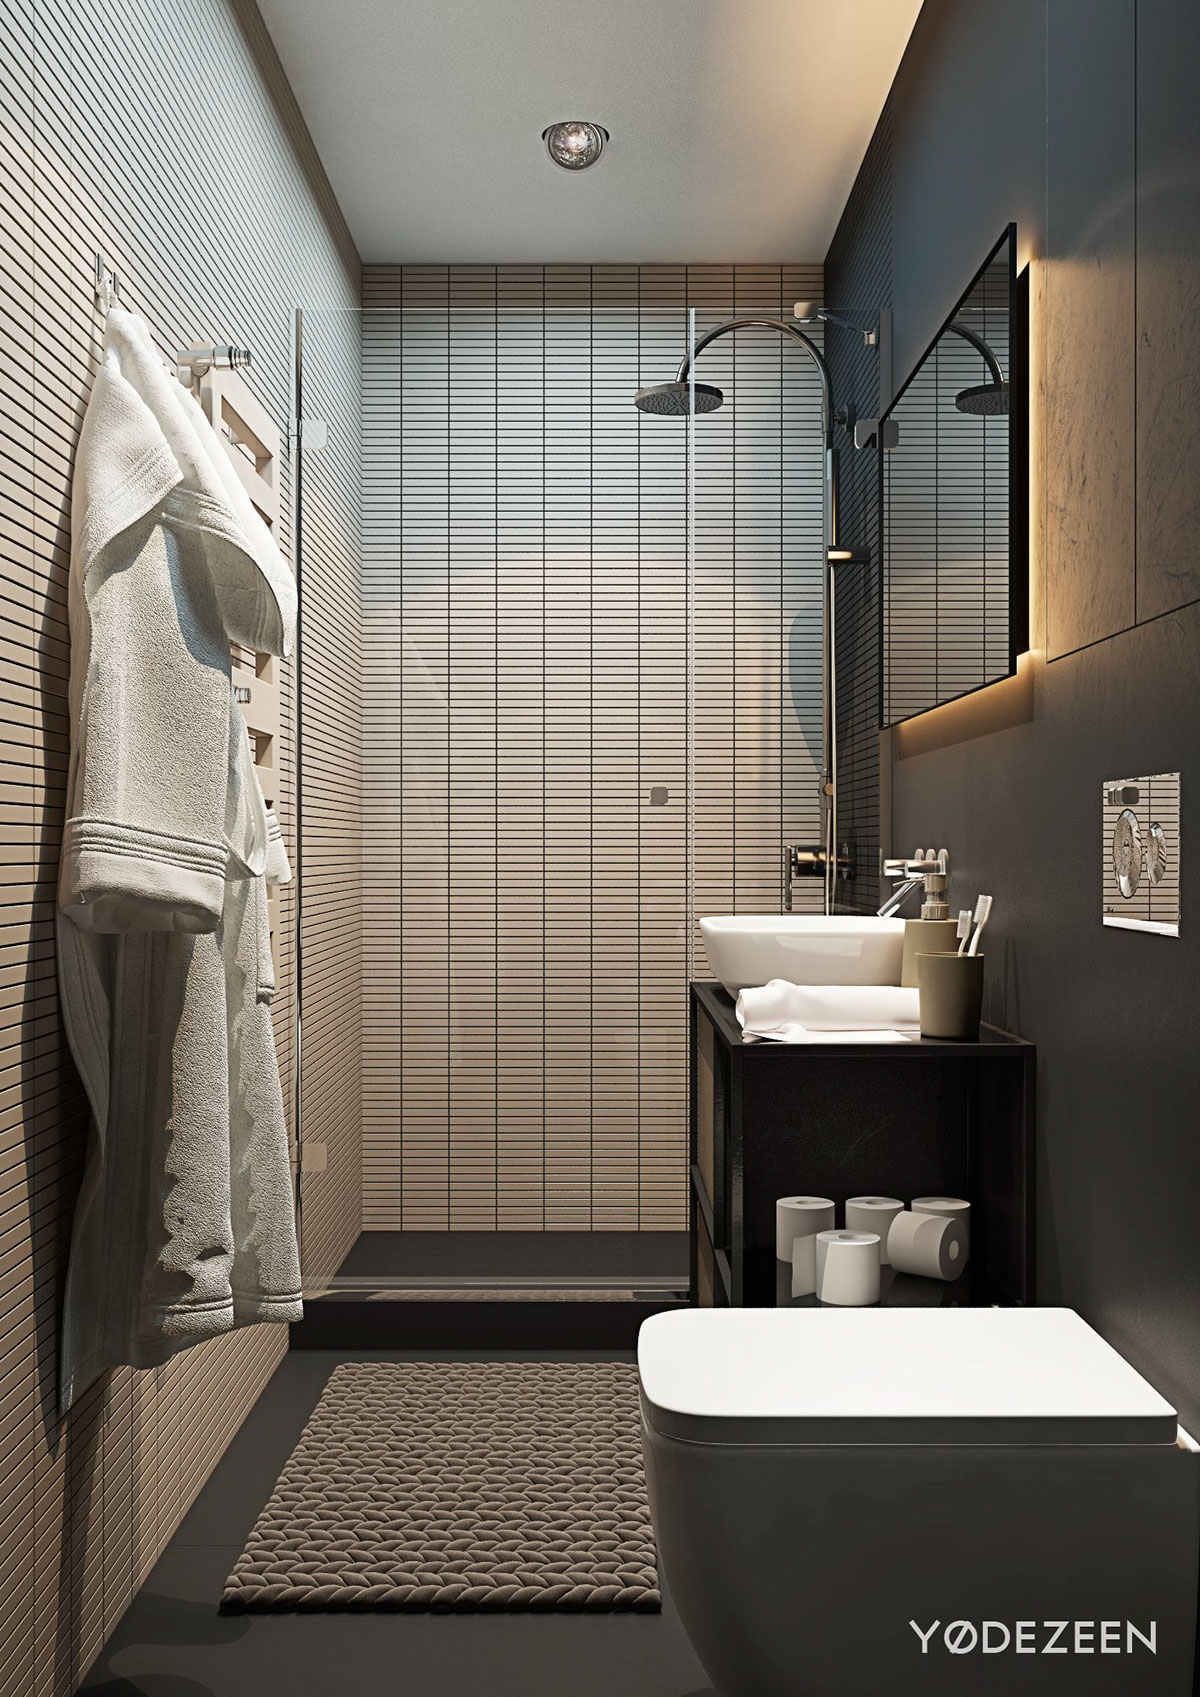 5 Small Studio Apartments With Beautiful Design on Small Apartment Bathroom Ideas  id=76925